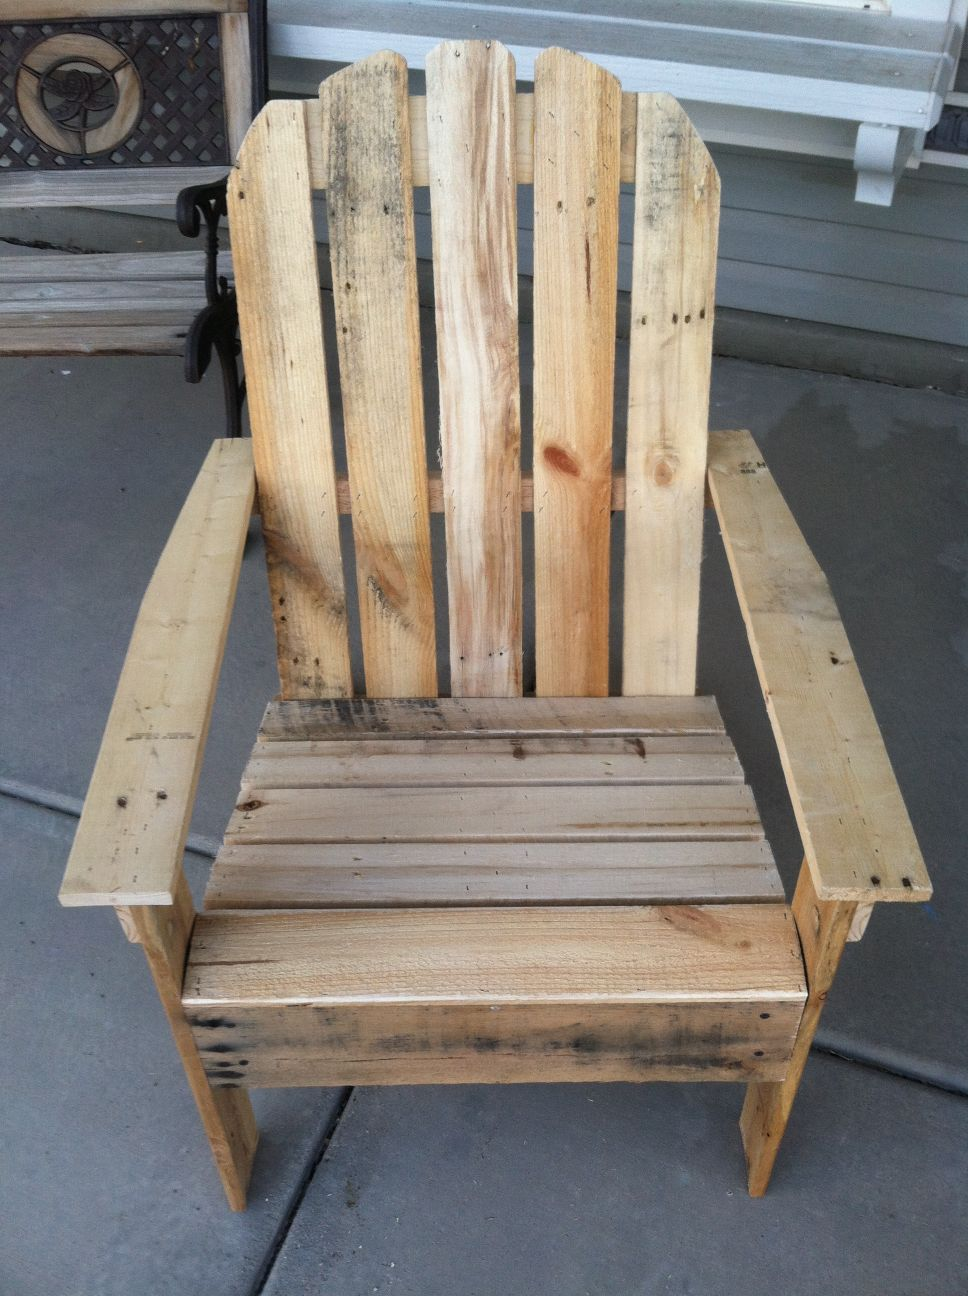 Pallet Bookshelf And Pallet Outdoor Chairdiy Pallet Furniture Diy Pallet Furniture